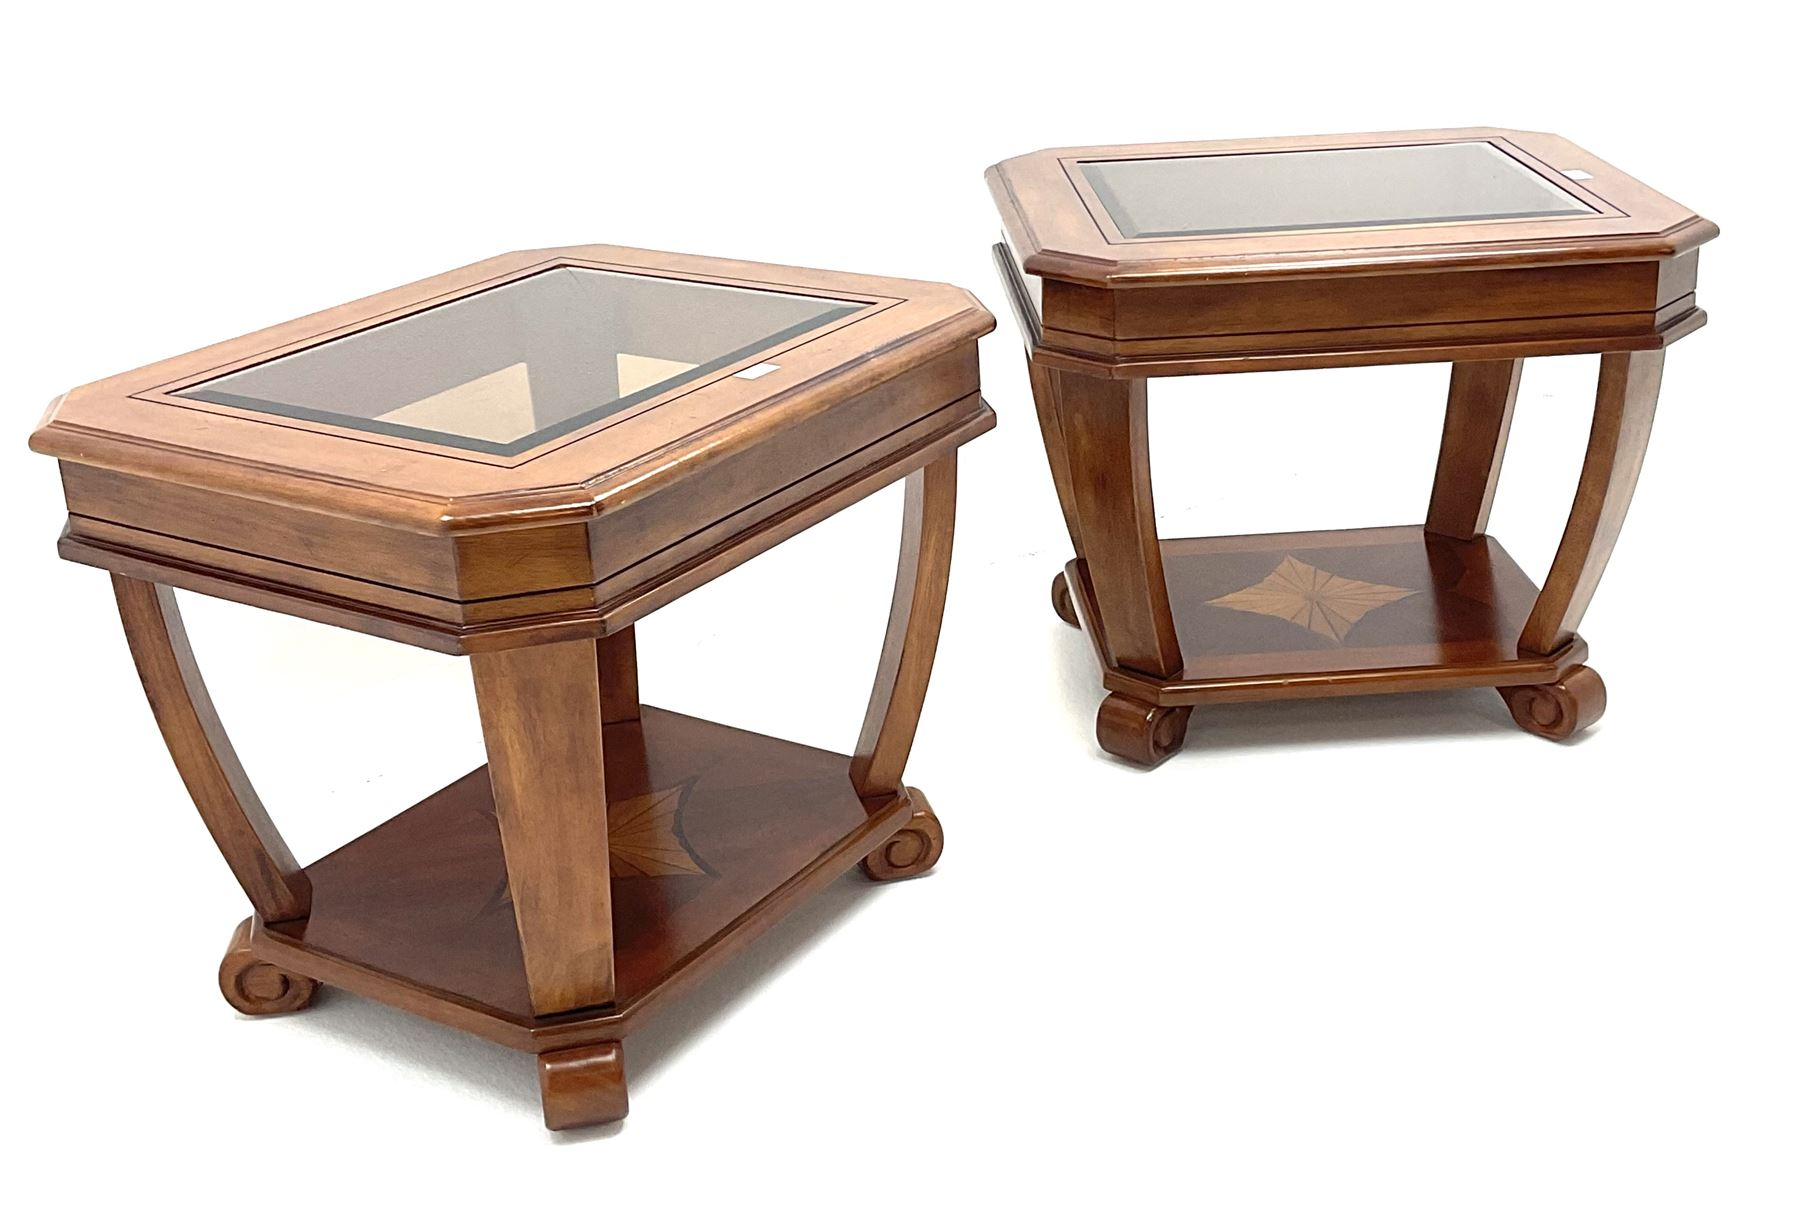 Pair walnut rectangular two tier lamp tables with inset glass tops - Image 3 of 4